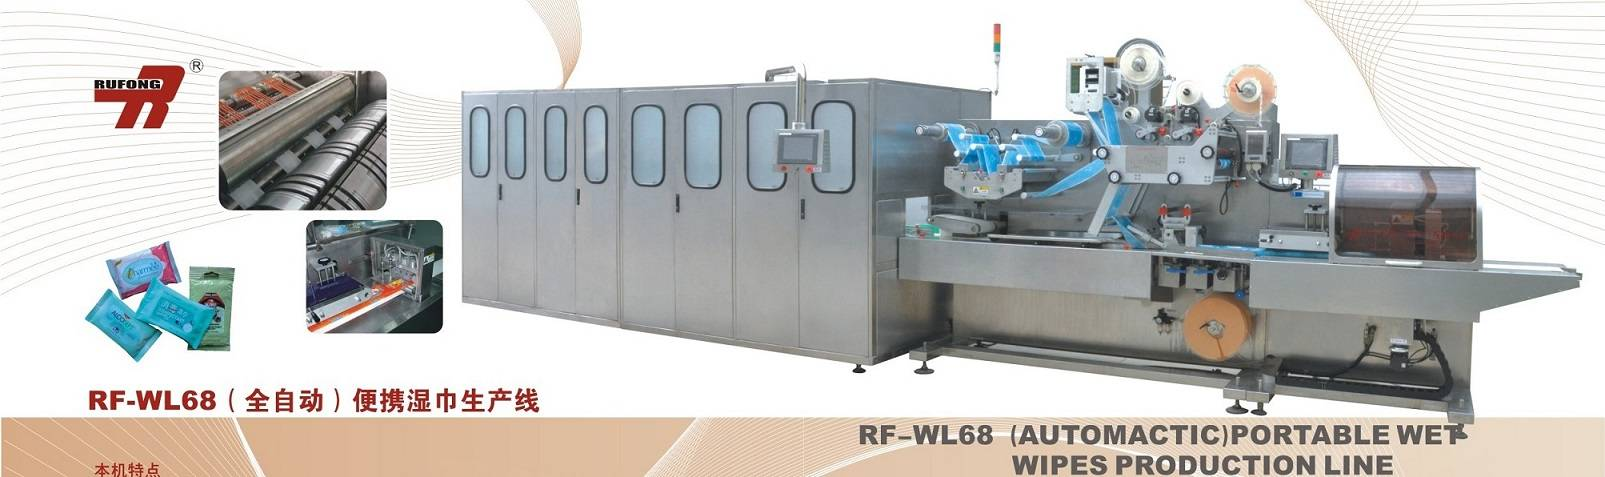 RF-WL68 Automatic Portable Wet Wipes Production Line